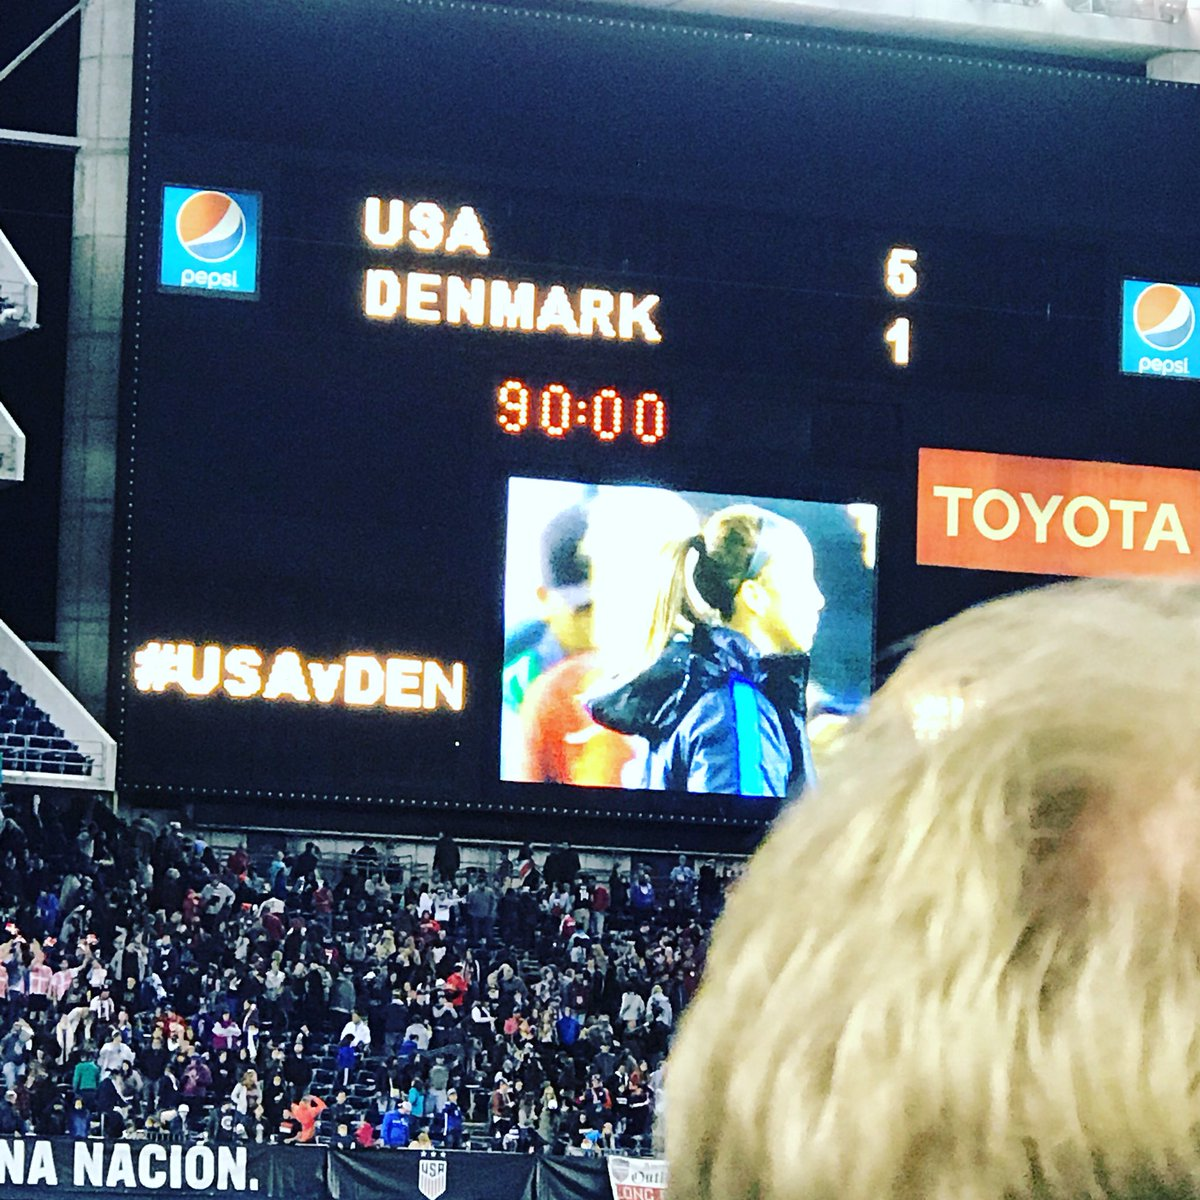 Amazing game!  So glad I could be there #wegotthreestars #USAvDEN https://t.co/zzL10NI0TT